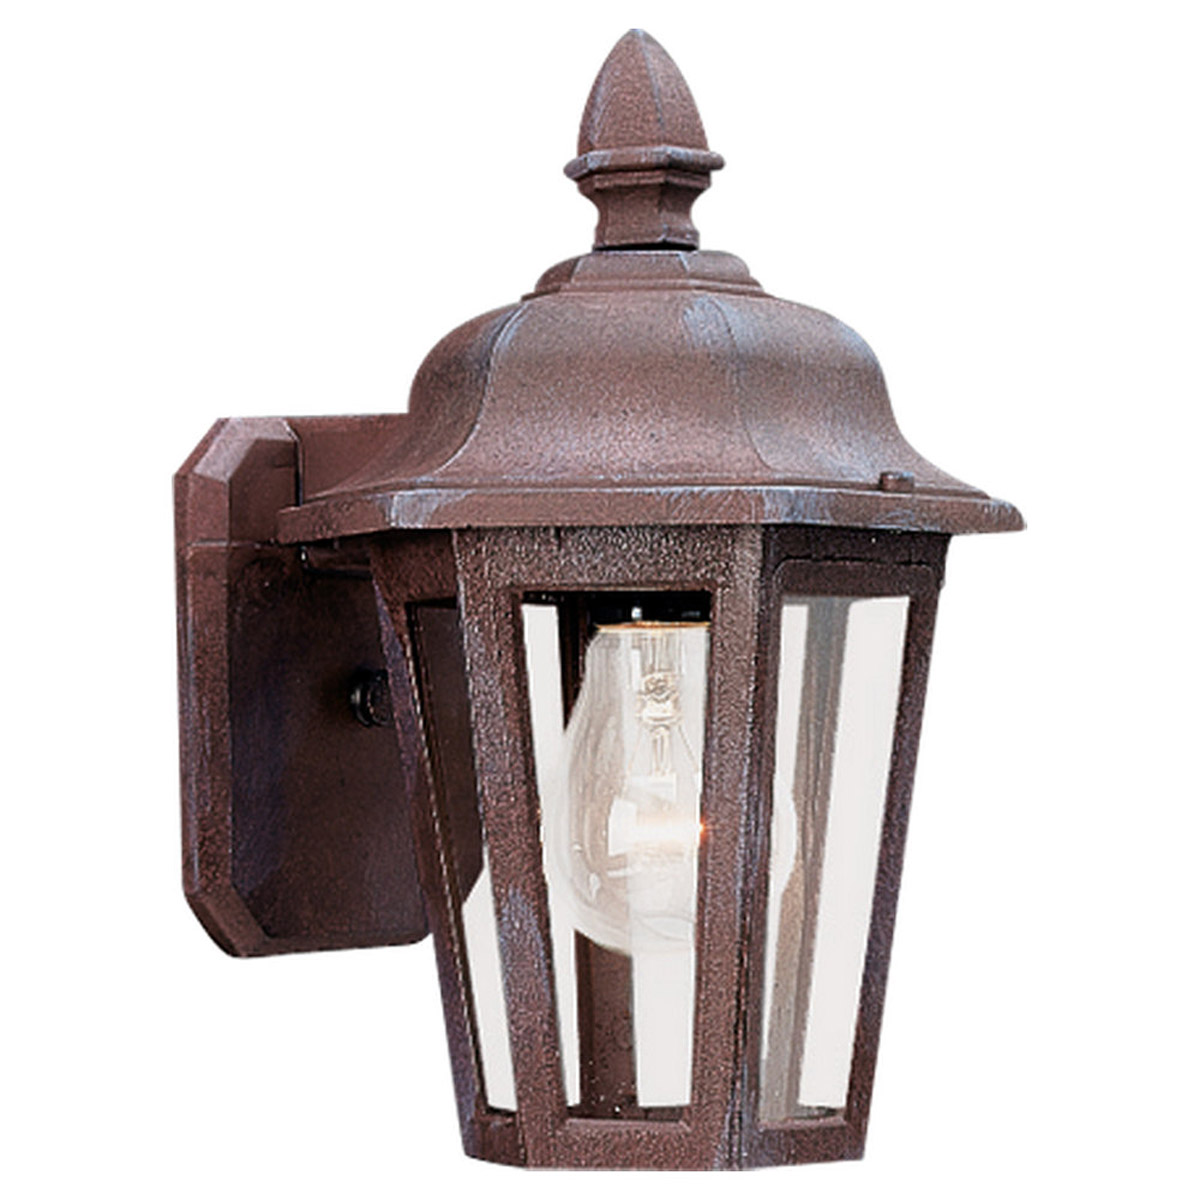 Sea Gull Lighting Brentwood 1 Light Outdoor Wall Lantern in Sienna 8822-26